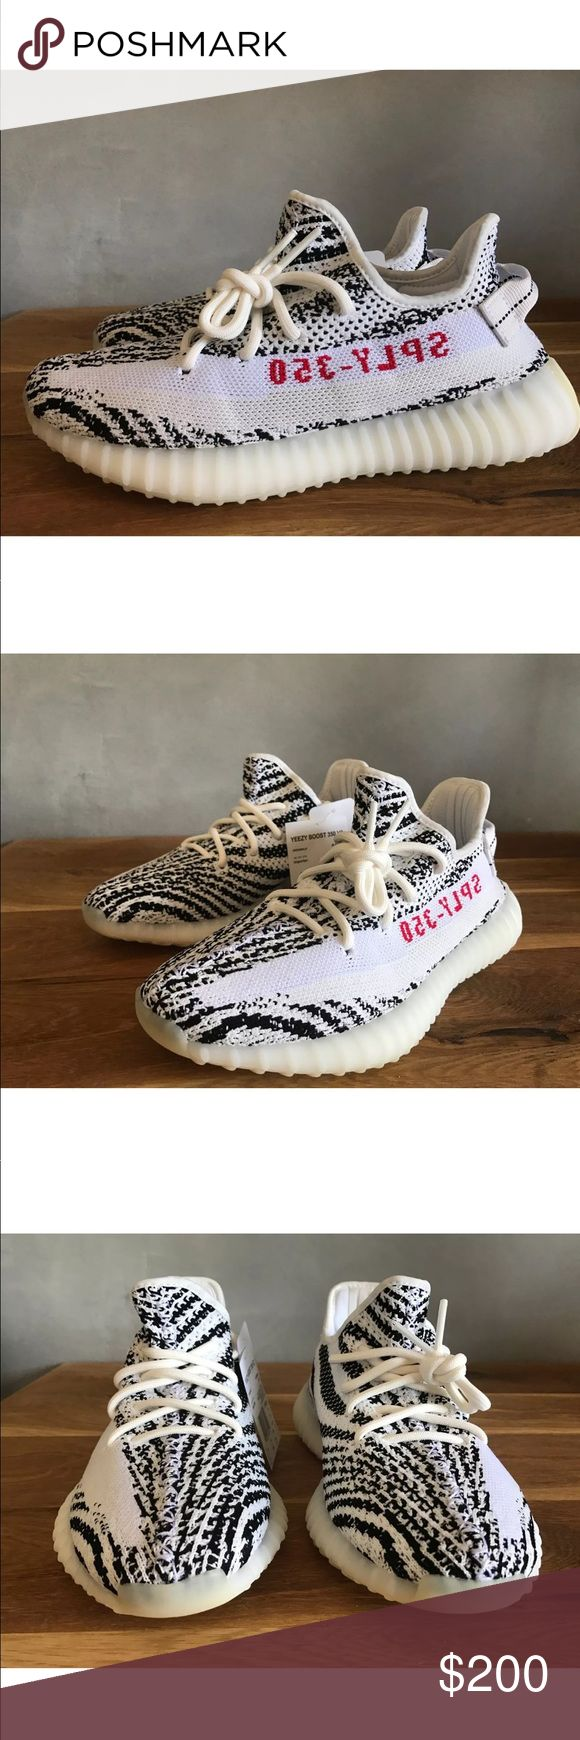 Zebras Selling all out first come first serve No questions asked. Sold as in in as condition. Some boxes damaged no kicks were damaged. I'm sick of this whole kicks gig. 200 a pair no less no more. Buy or lose out. I don't care if you think there fake and made in. China. Ask adidas where they make there's also some made in Vietnam. I'm. Or giving no reciepts don't ask. I'm selling all that's it I had about enough of the bs. Also Zebra Blues avail sizes 10-11  and Belugas and supremes whites…